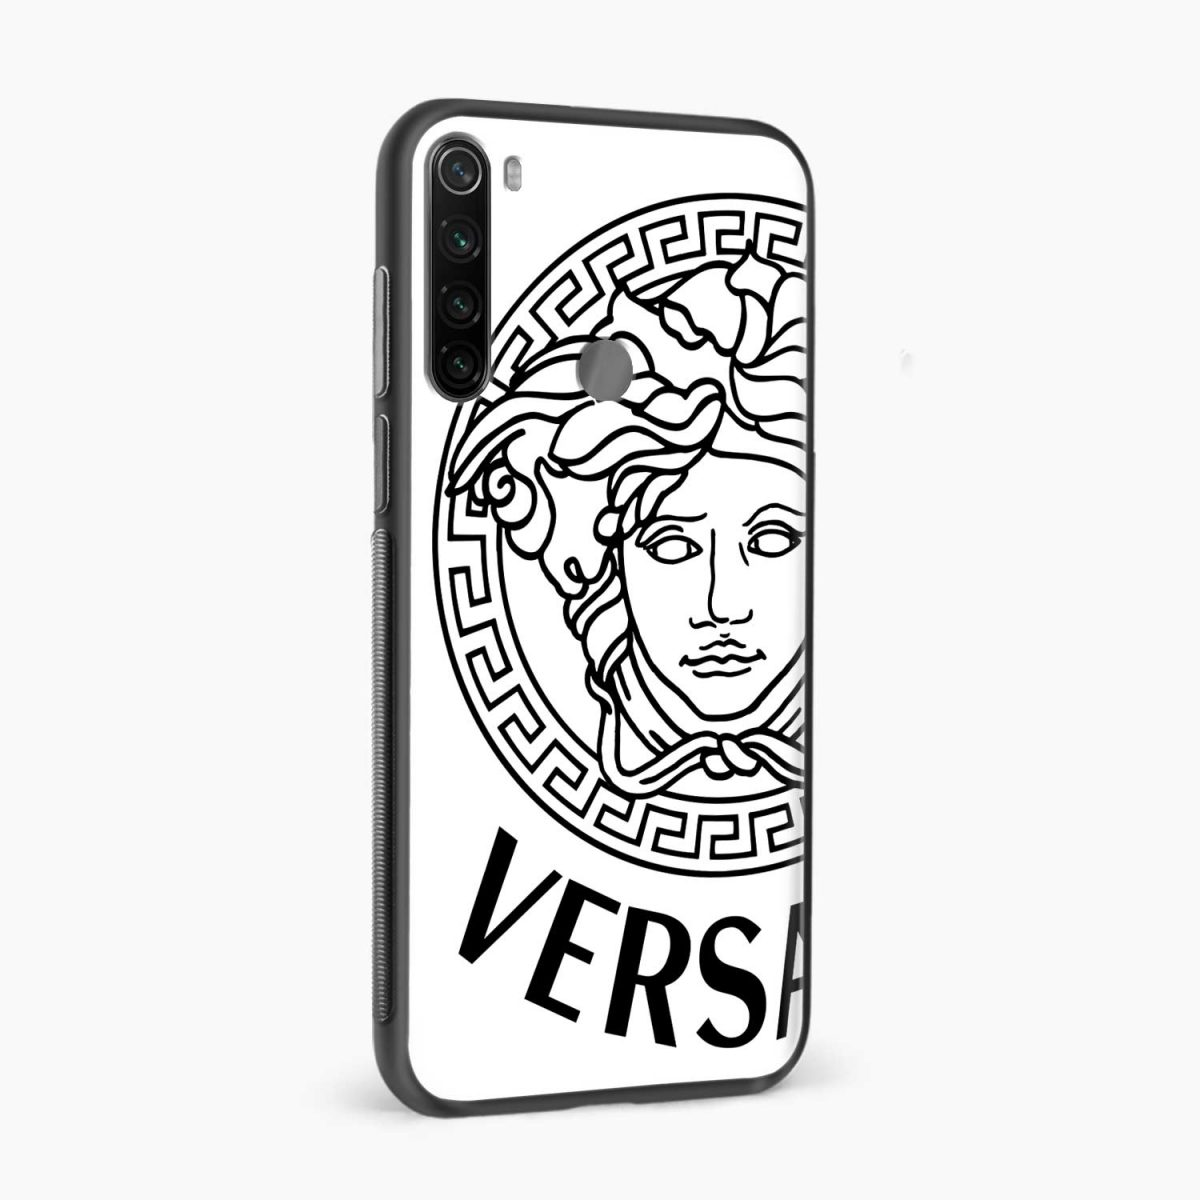 versace black white side view redmi note 8 back cover